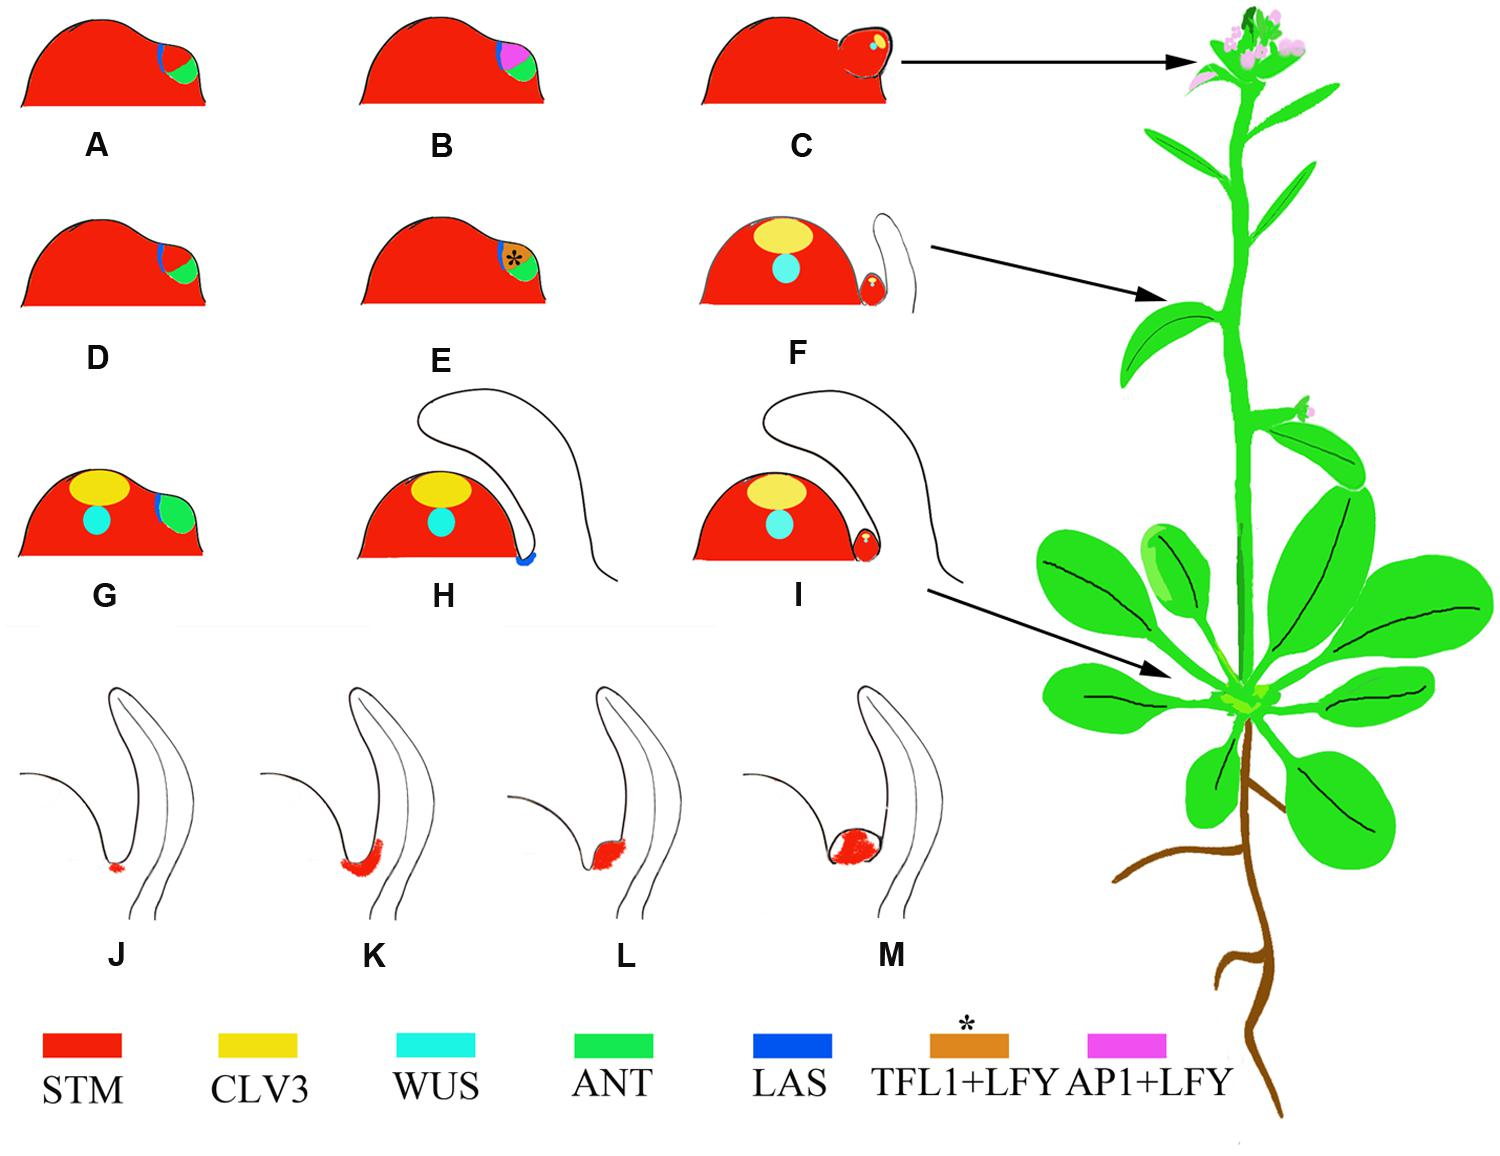 Frontiers Regulation Of Axillary Meristem Initiation By